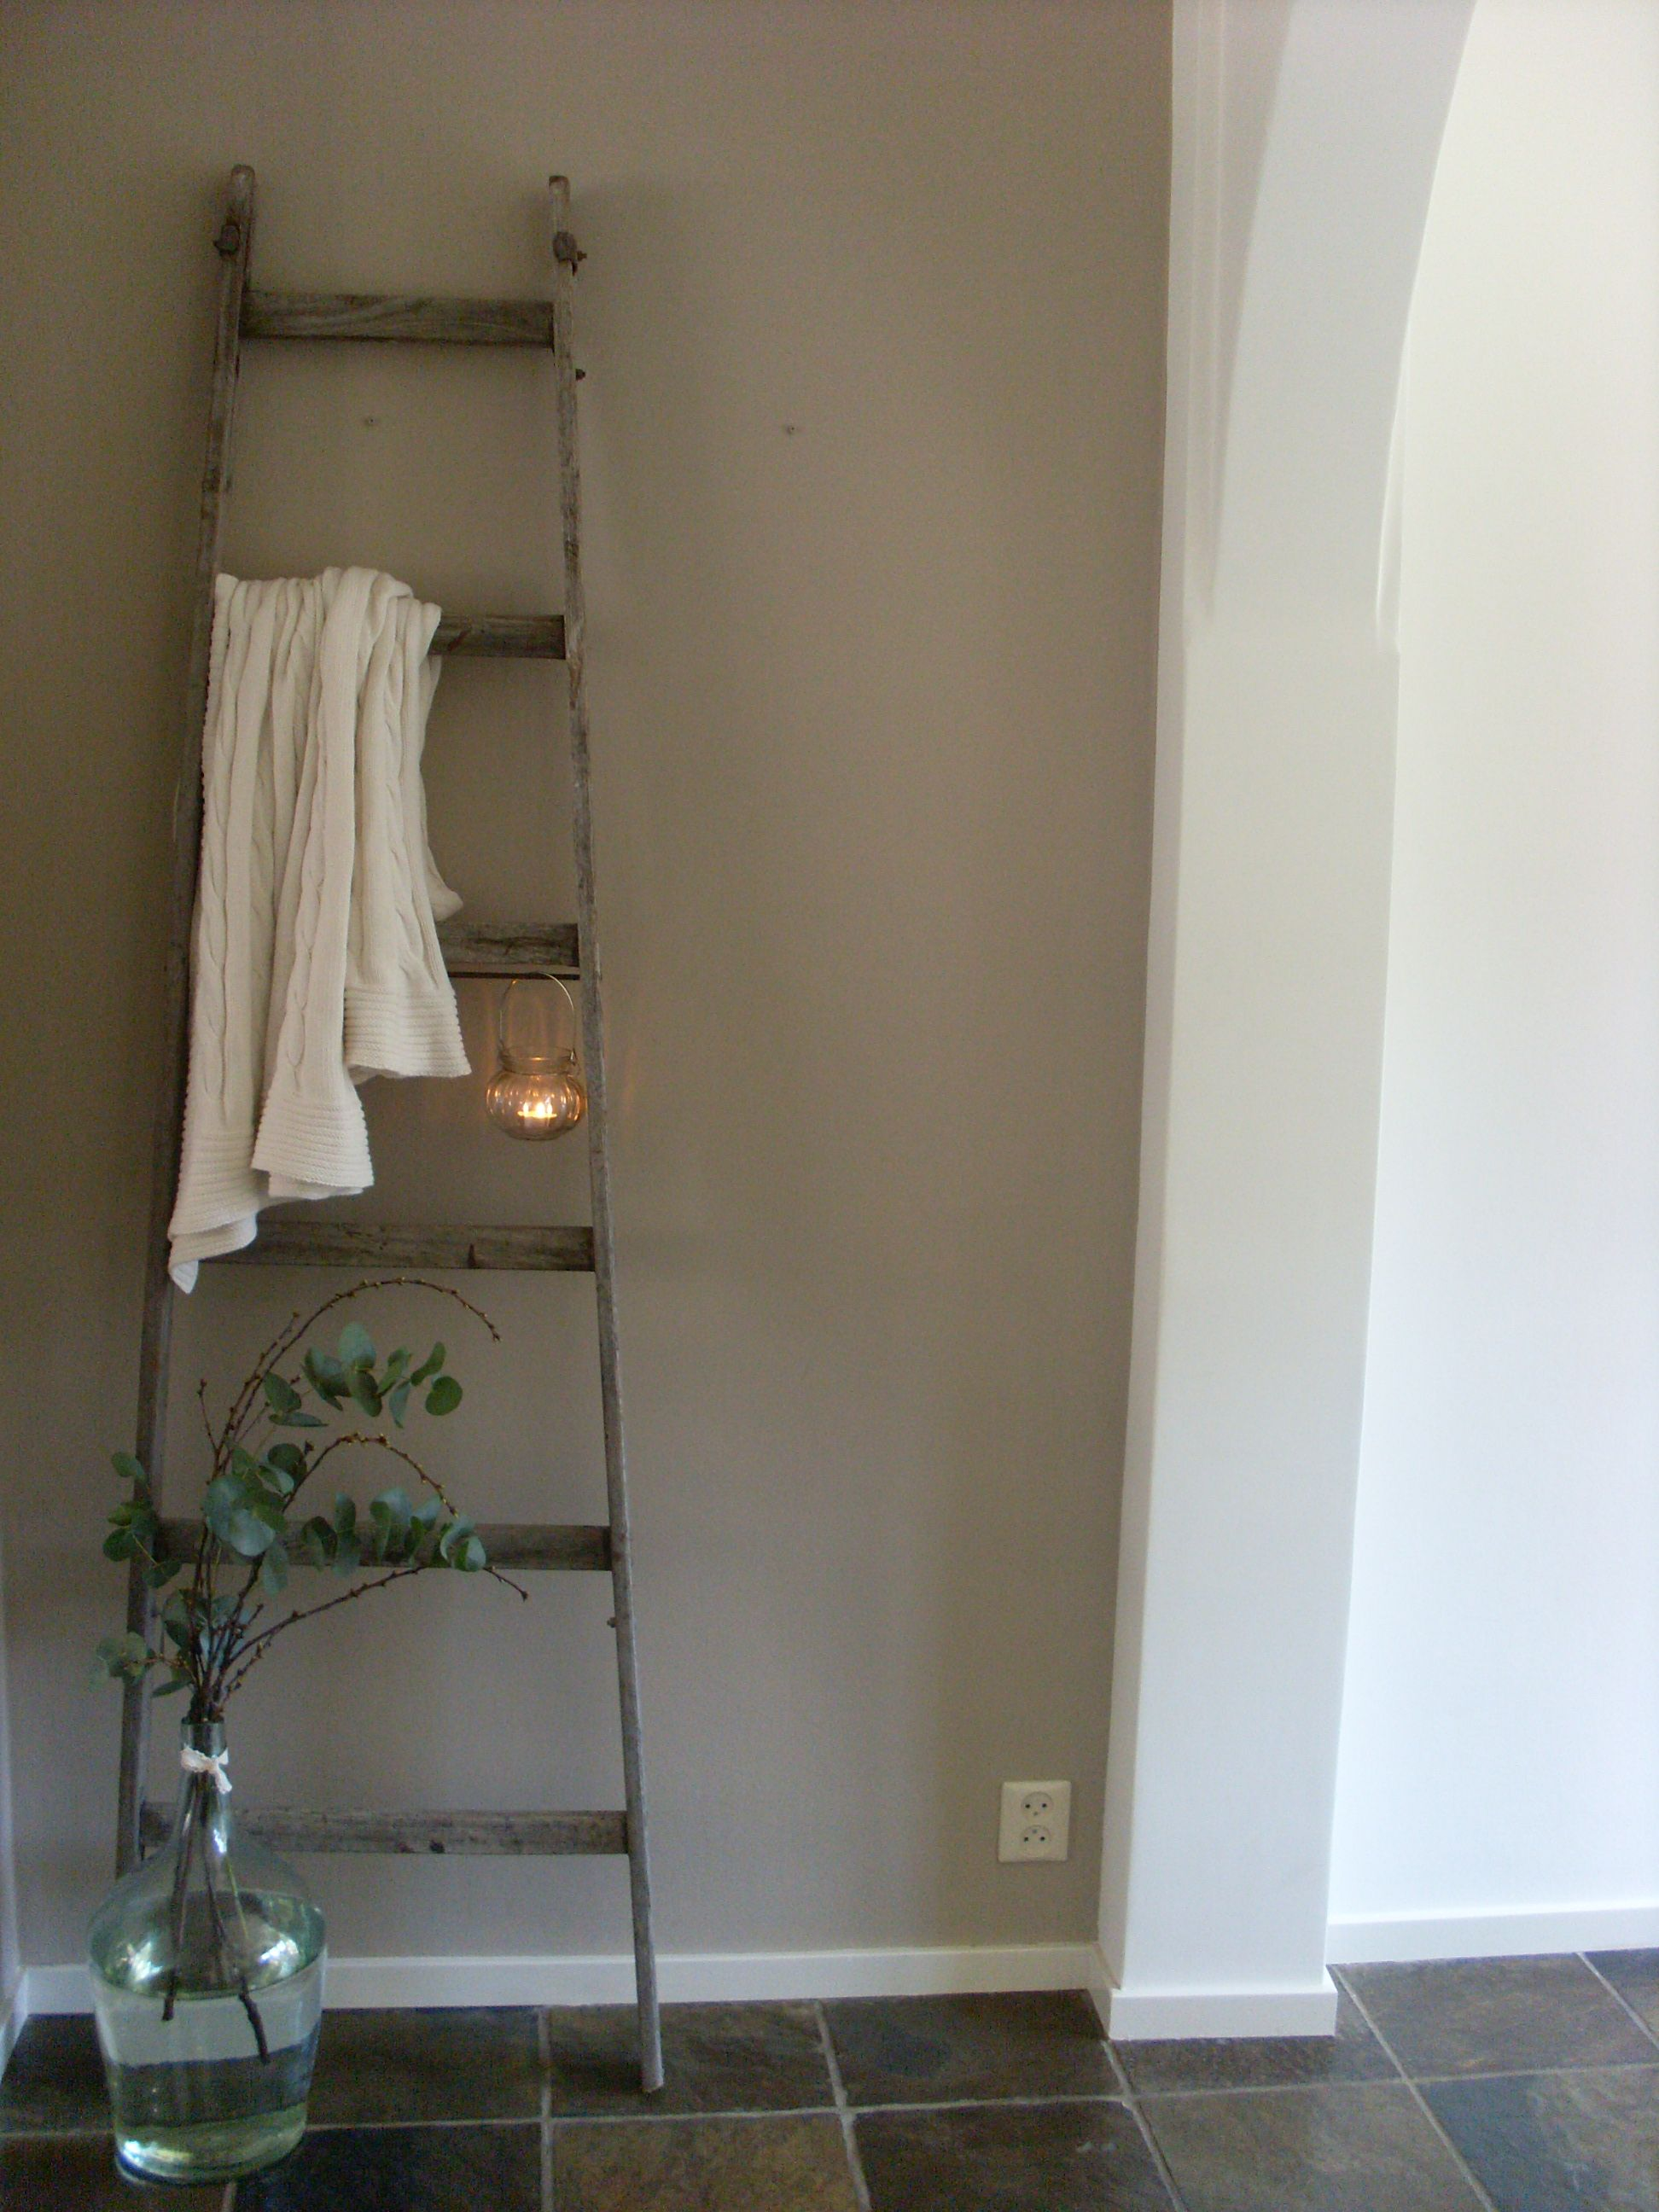 Manon Interieur Enschede Wallcolour Soft Linen Painting The Past Pinterest